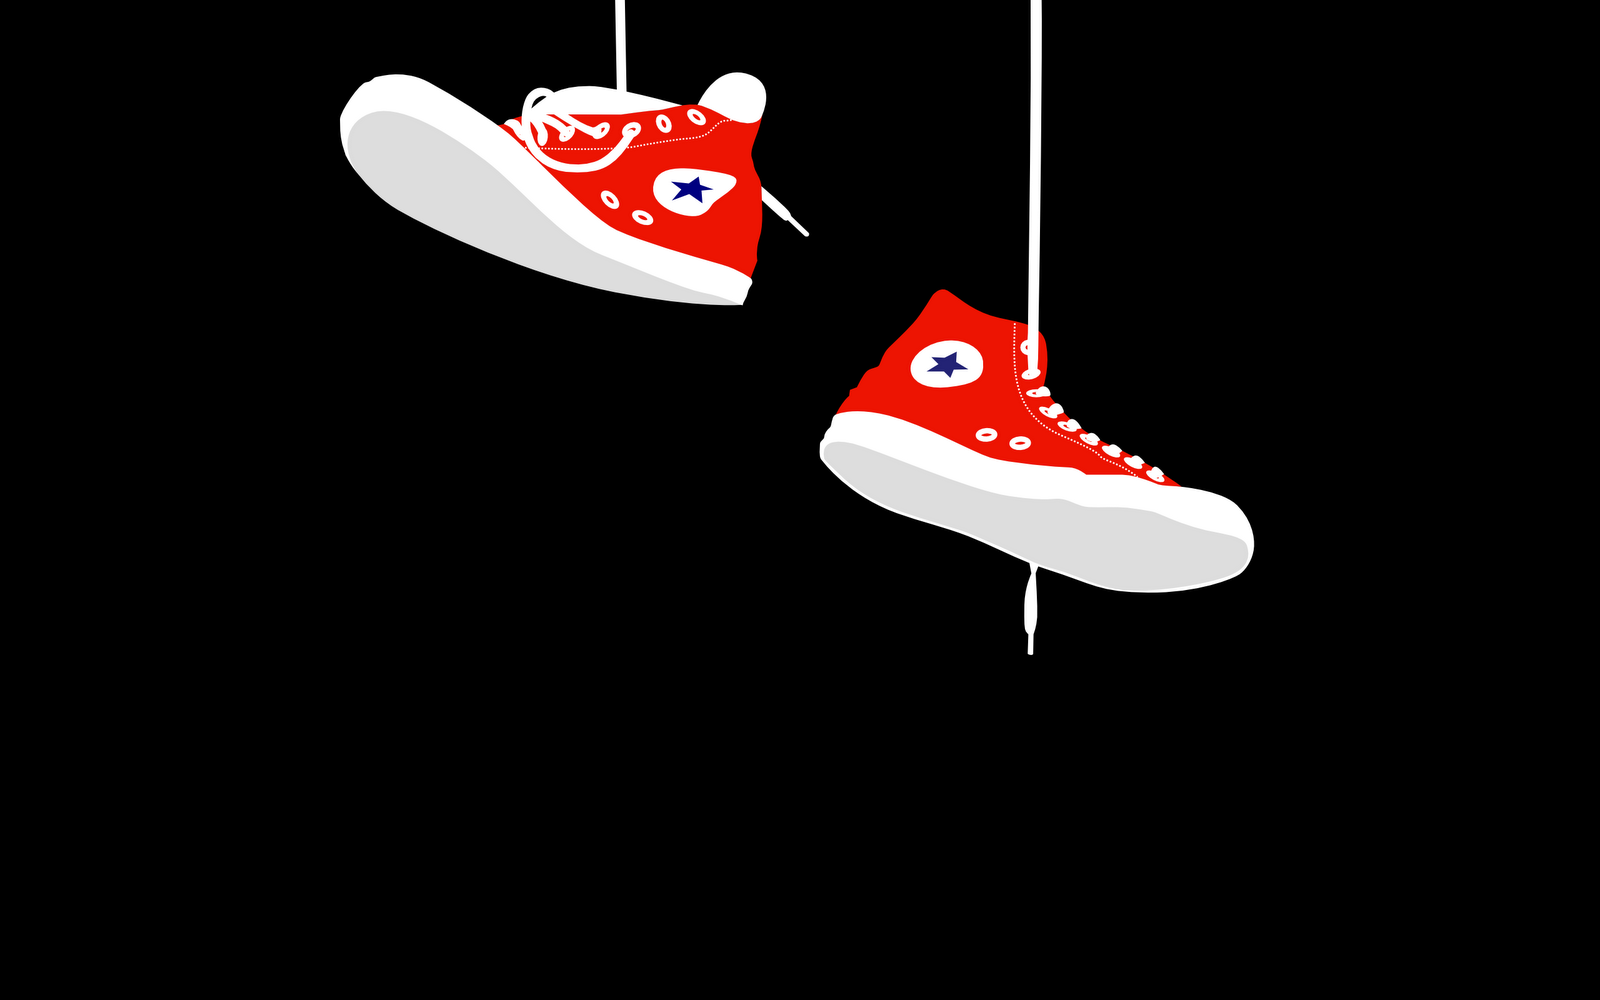 Converse All Star HD Logo Wallpapers Download Wallpapers in HD 1600x1000